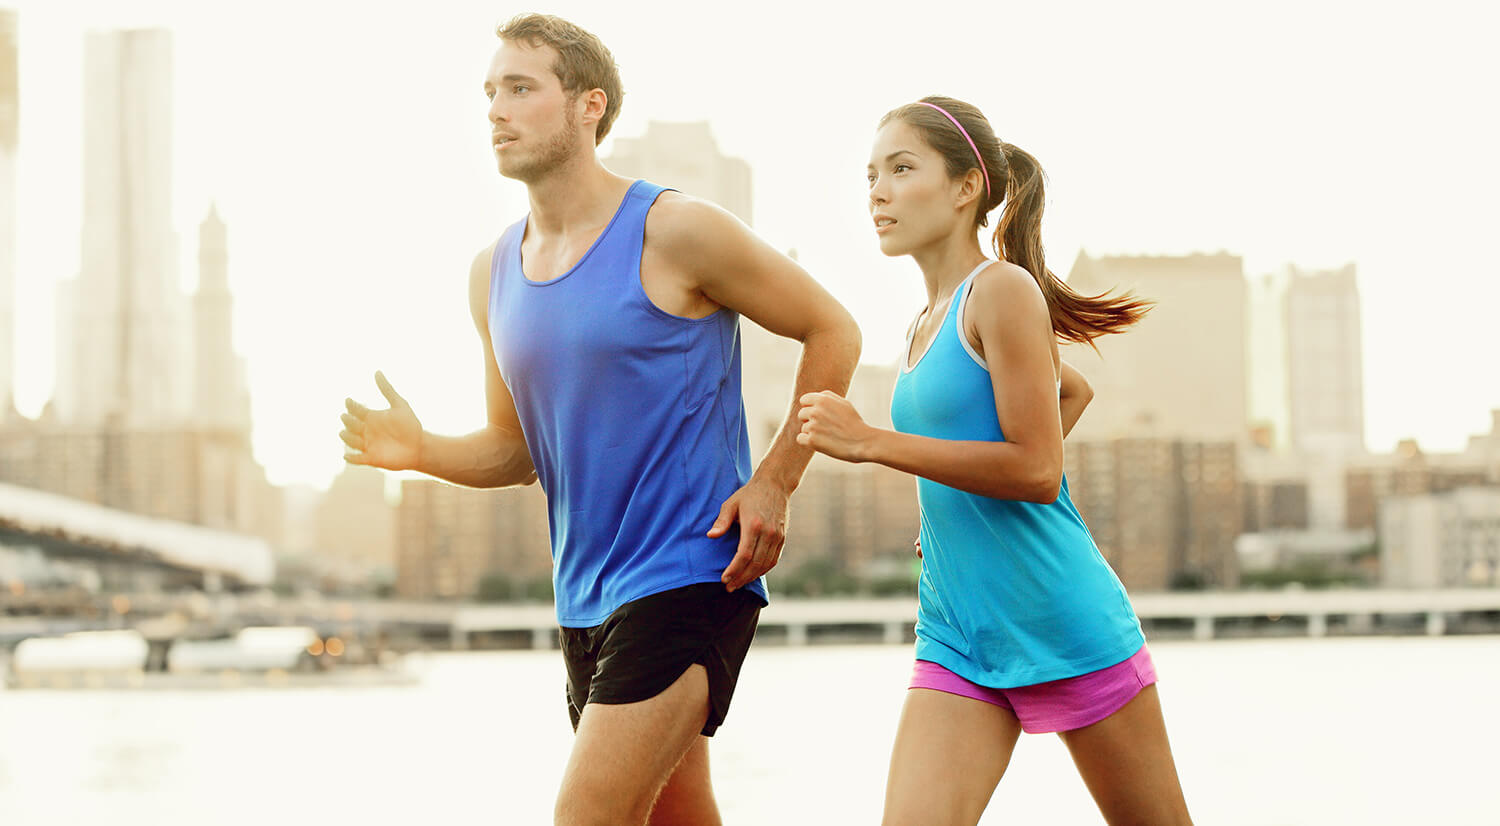 A man and a woman running and exercising